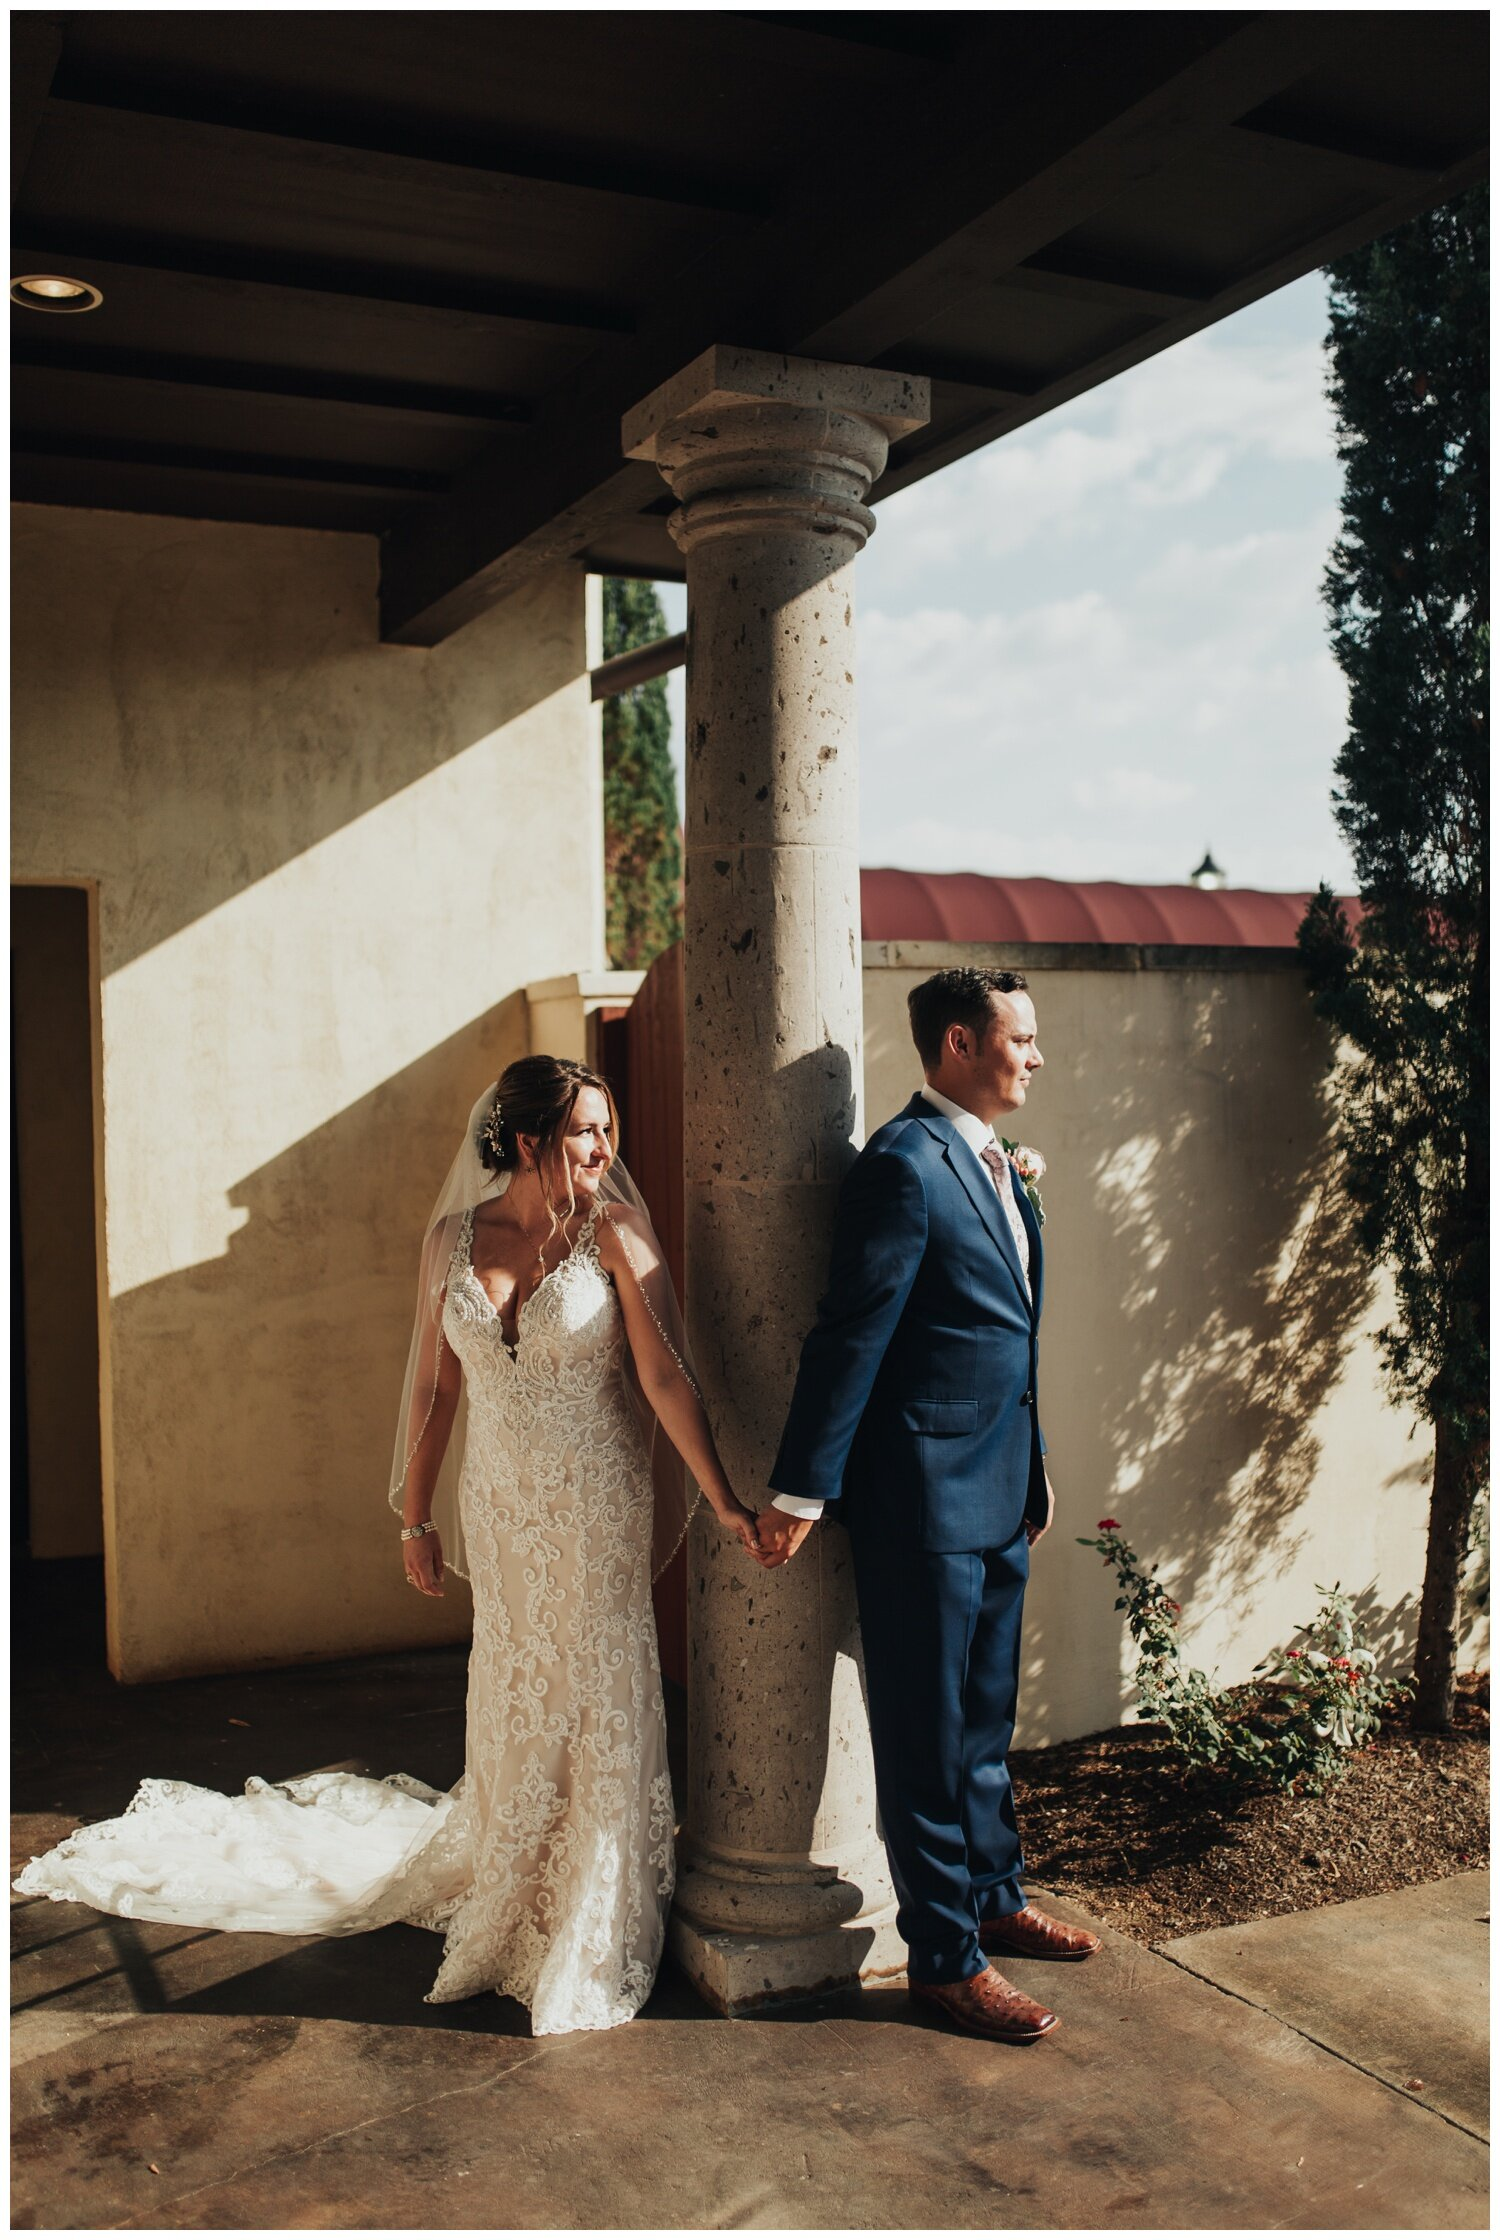 Modern Wedding at Ma Maison in Dripping Springs, Austin, Texas (Joshua and Parisa – Austin Wedding Photographer)_0047.jpg